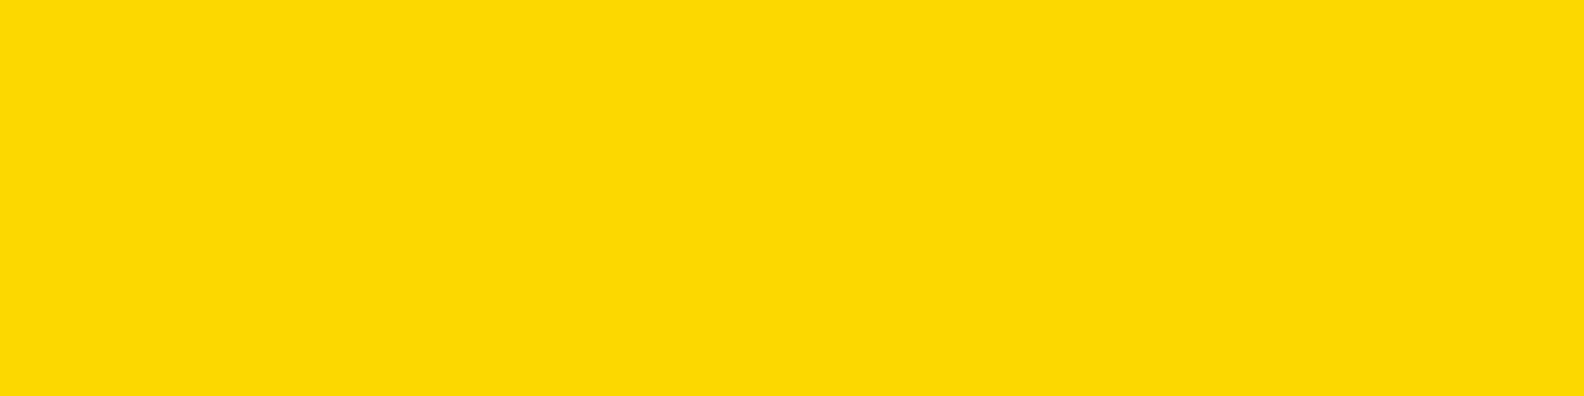 1584x396 School Bus Yellow Solid Color Background